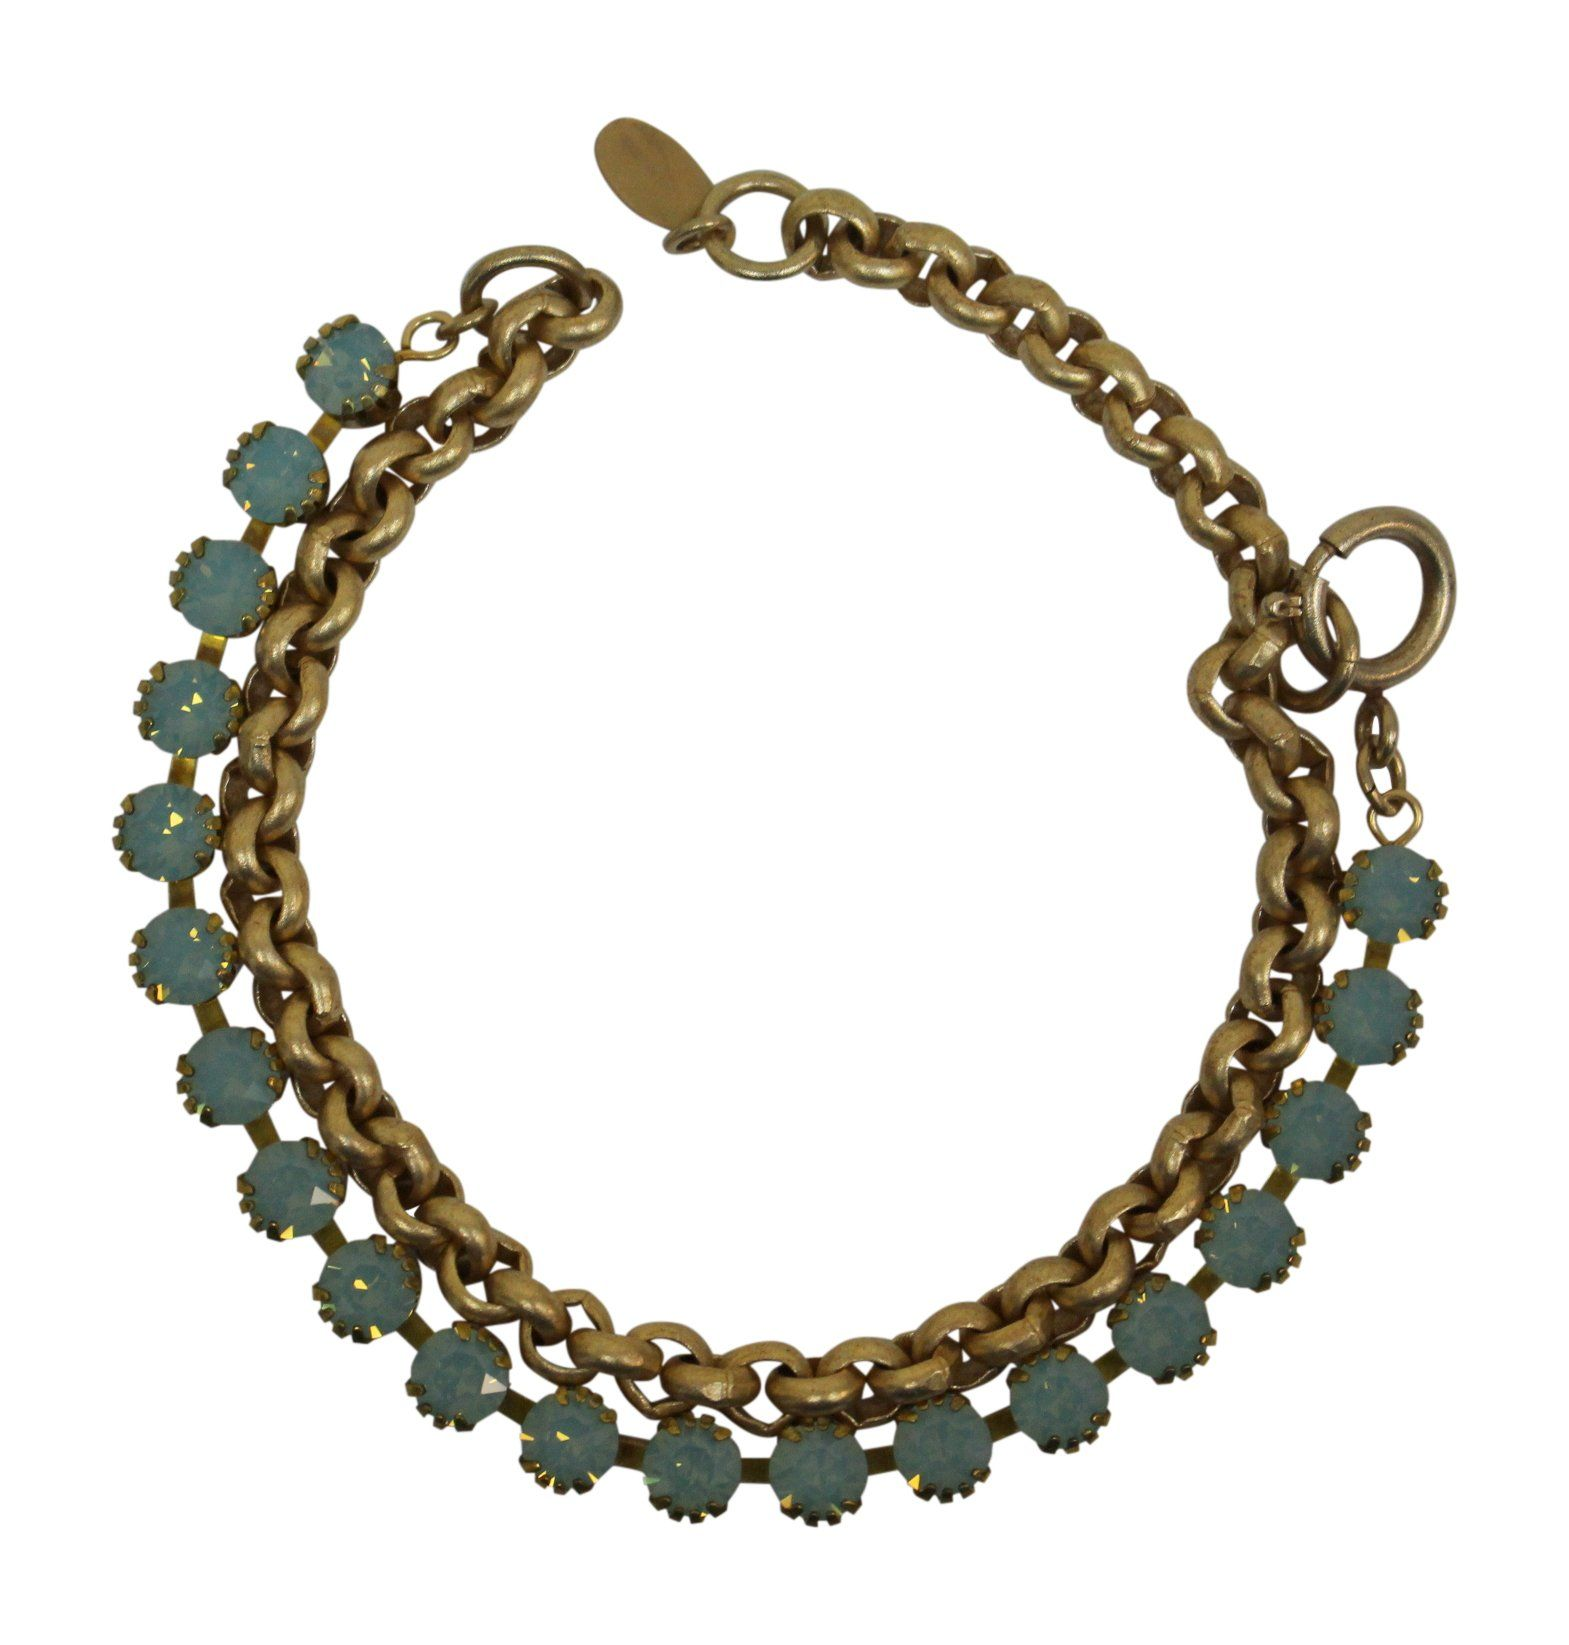 """Catherine Popesco La Vie Parisienne Goldtone Pacific Blue Swarovski Crystal Wrap Bracelet. Antiqued Goldtone Wrap Bracelet with Pacific Blue Swarovski Crystals. As a bracelet it measures approx 7"""" : The chain measures approx 14.5"""" - 16.5"""". This can be worn doubled as a bracelet or single as a choker. Hand set Swarovski Crystals - the finest Austrian crystals available. Light weight : image is enlarged to show detail : Made in France."""